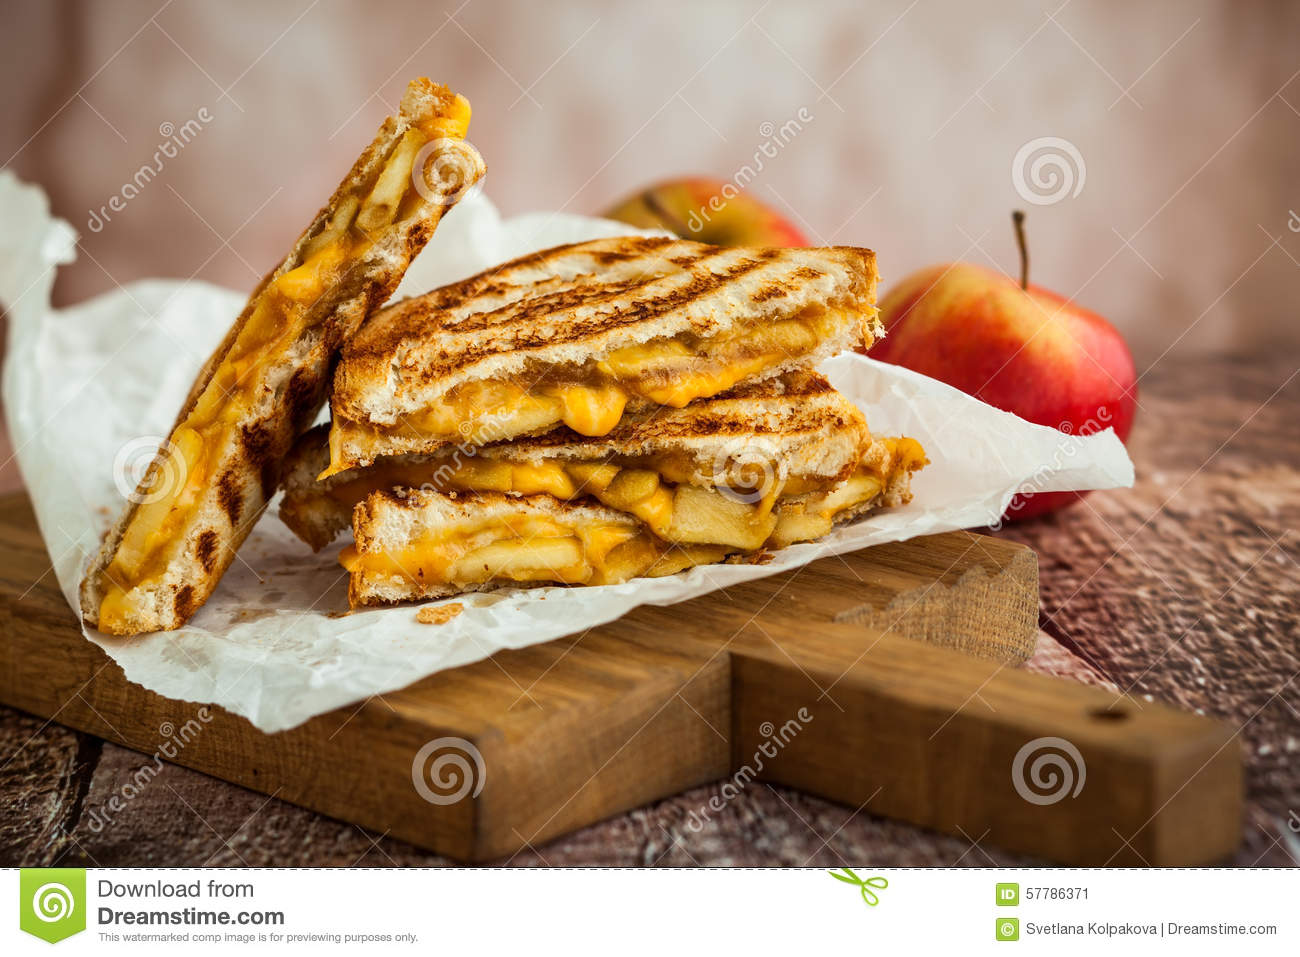 Grilled Cheese Sandwich Stock Photo - Image: 57786371